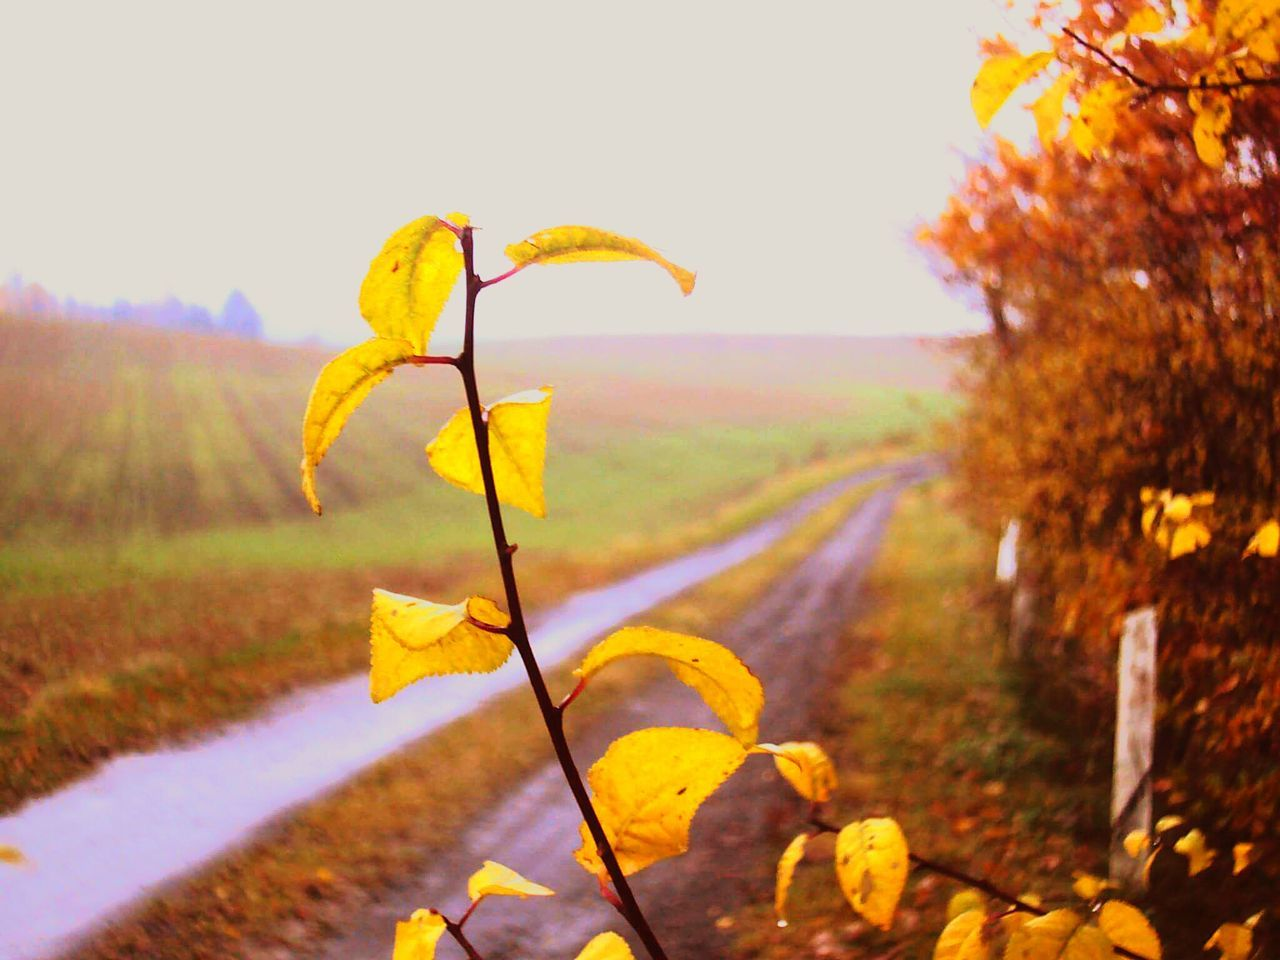 nature, leaf, autumn, growth, beauty in nature, outdoors, yellow, plant, no people, day, change, tranquility, scenics, close-up, fragility, sky